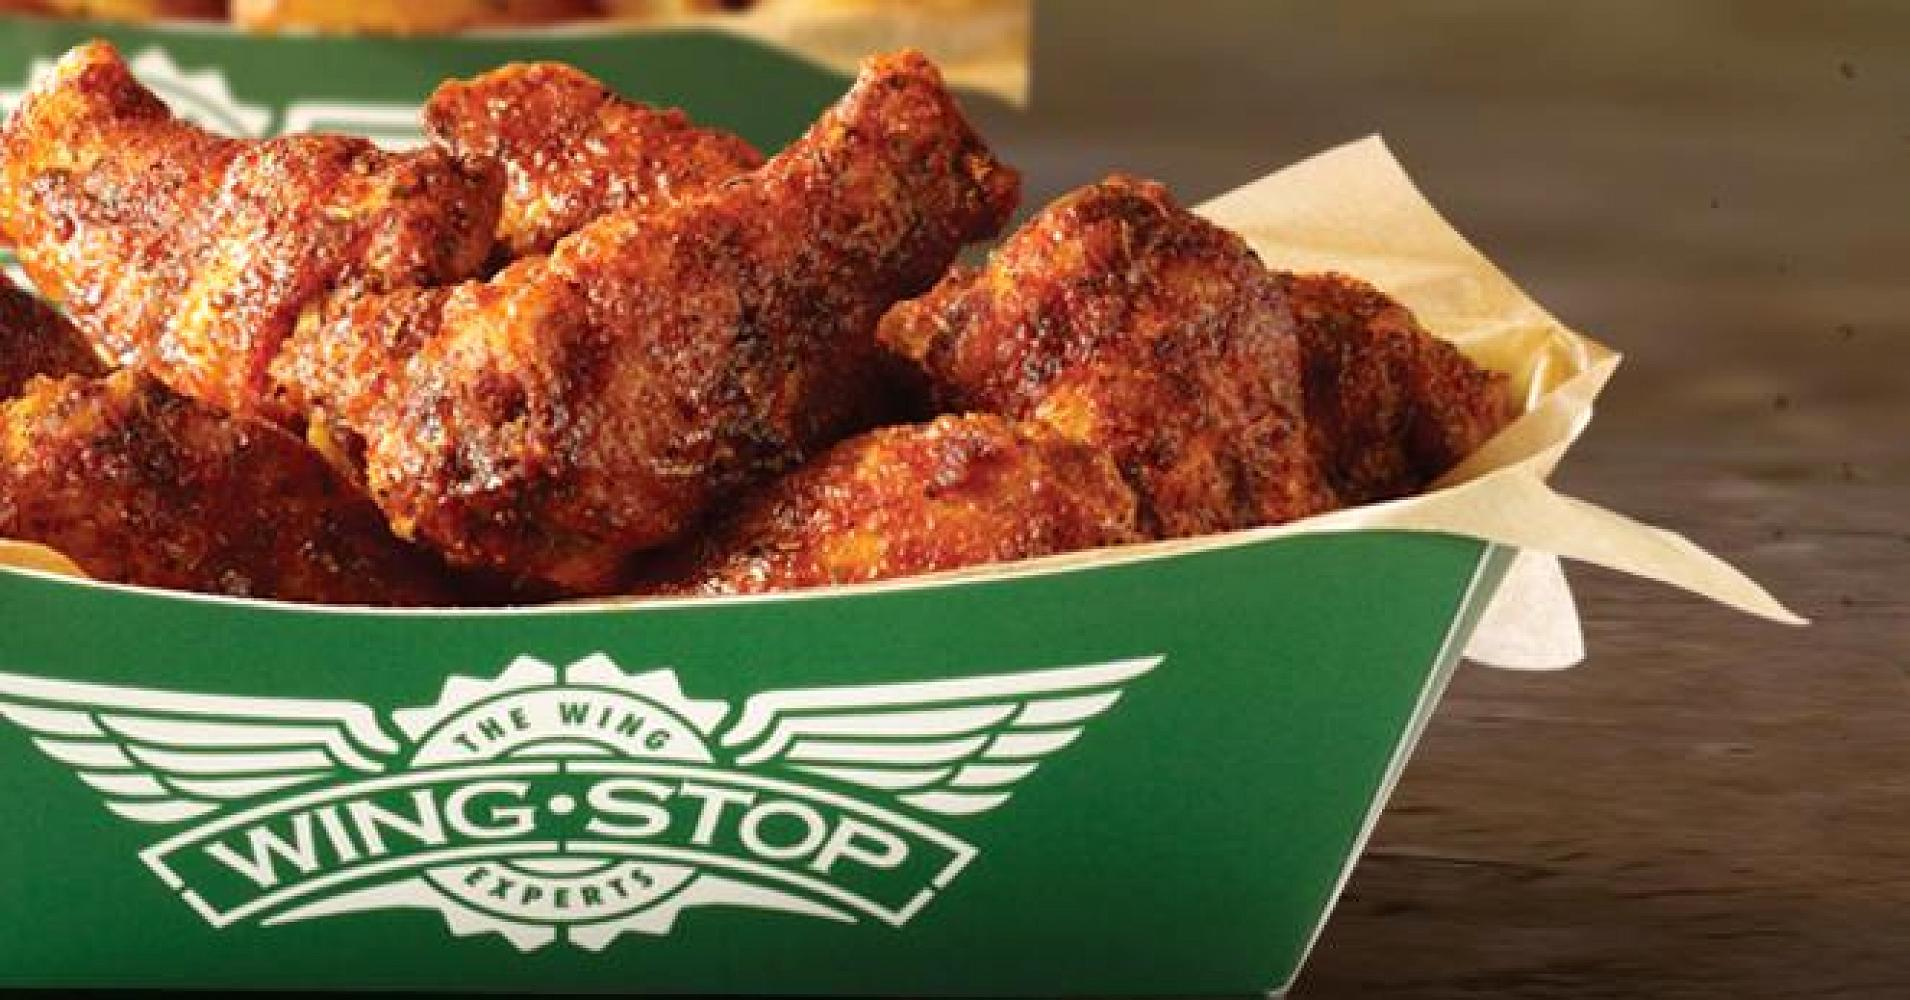 Get your wing fix with the Wingstop app   deTeched 1910x1000